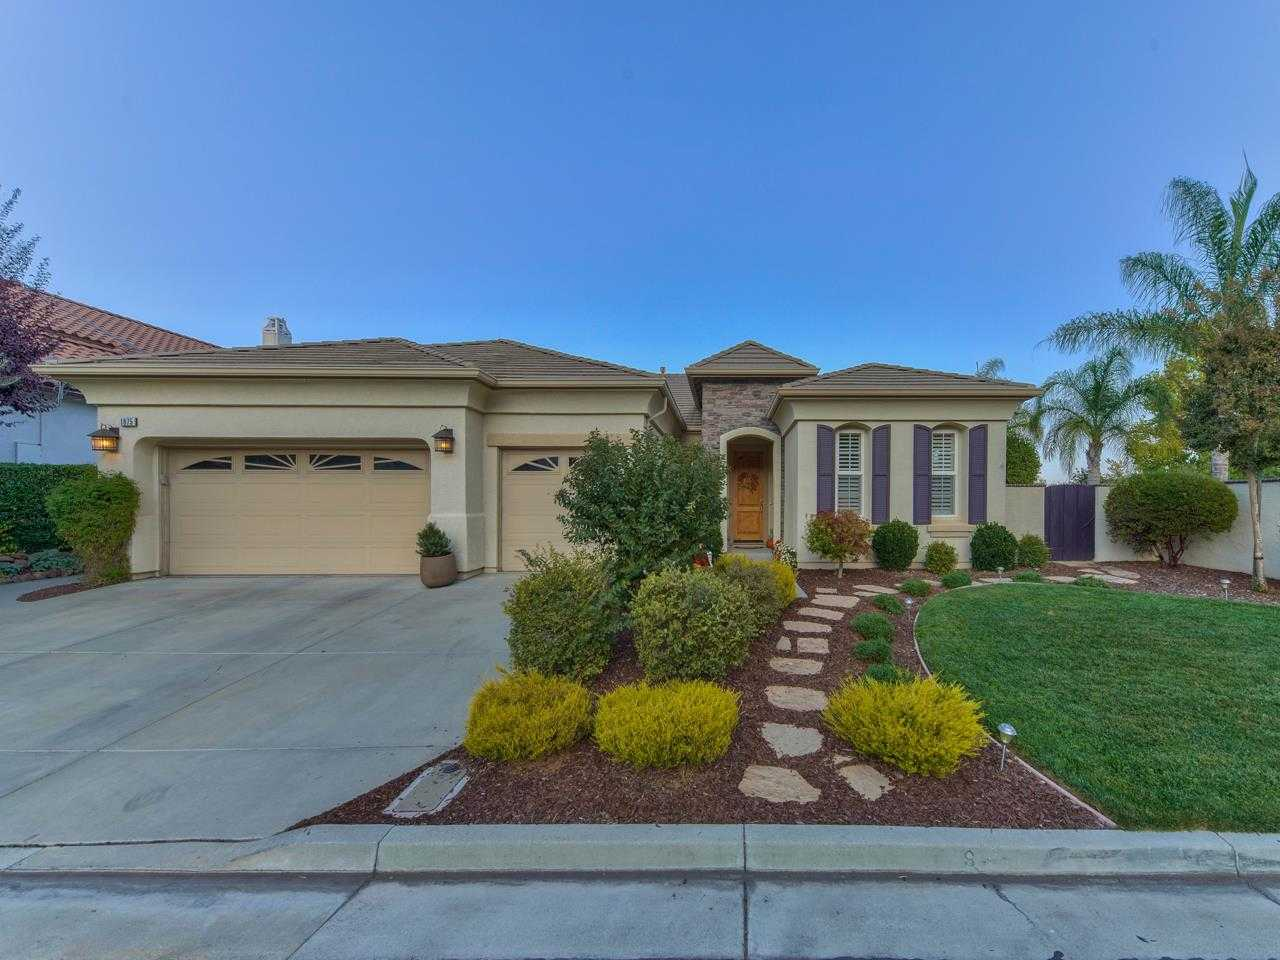 $1,319,000 - 4Br/3Ba -  for Sale in Gilroy